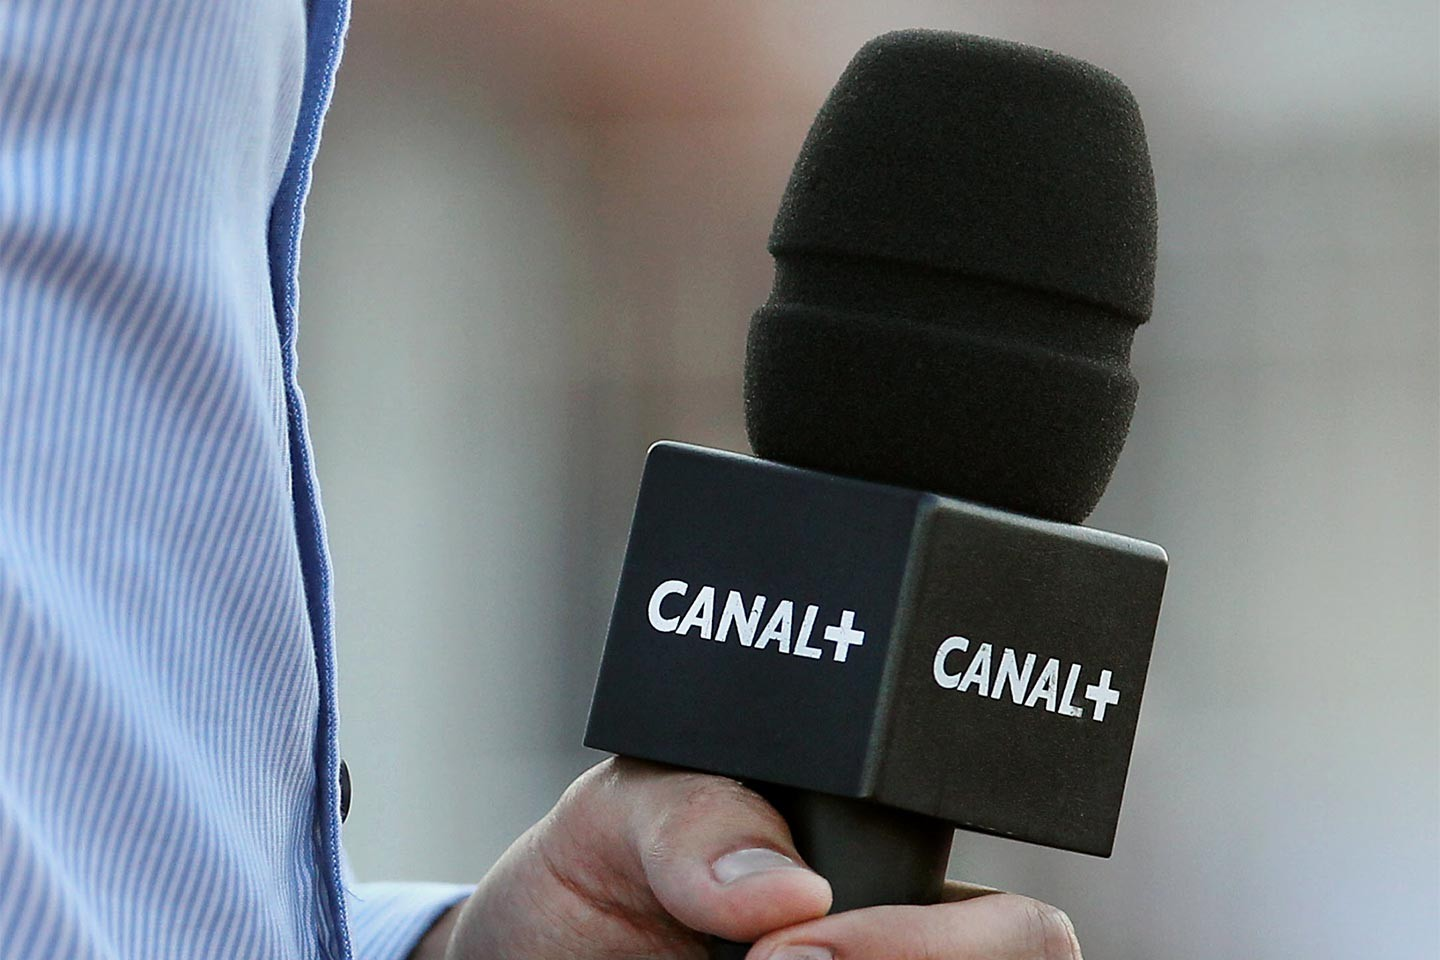 Canal+ : grosse promo au rayon boucherie